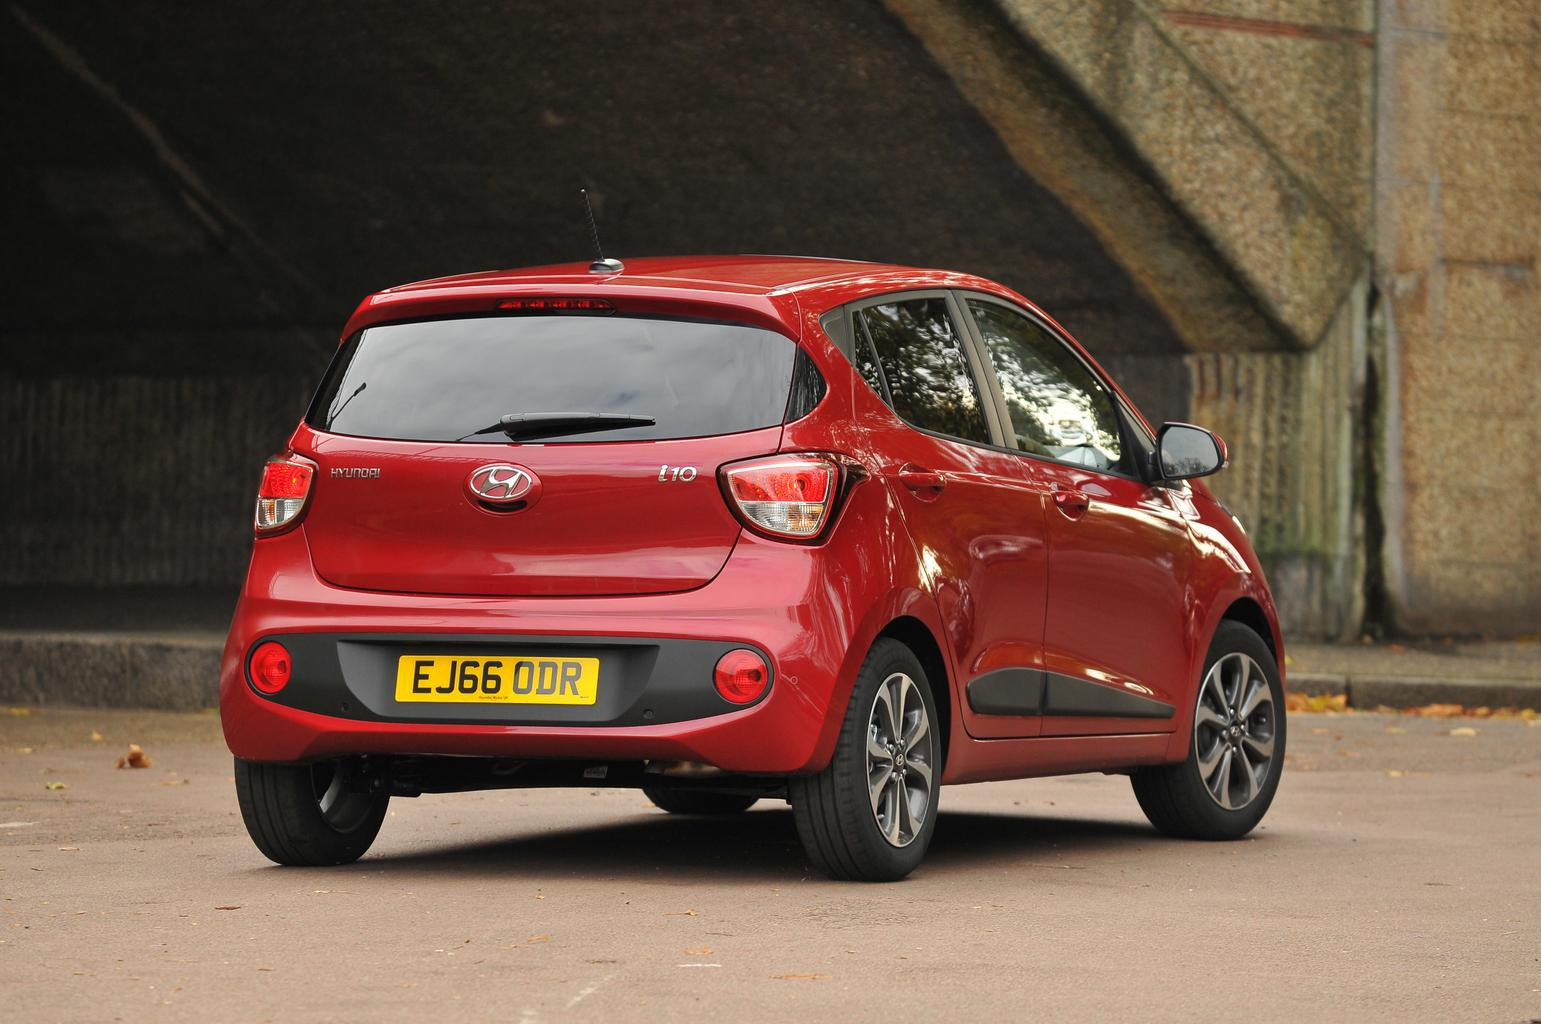 New car deal of the day: Hyundai i10